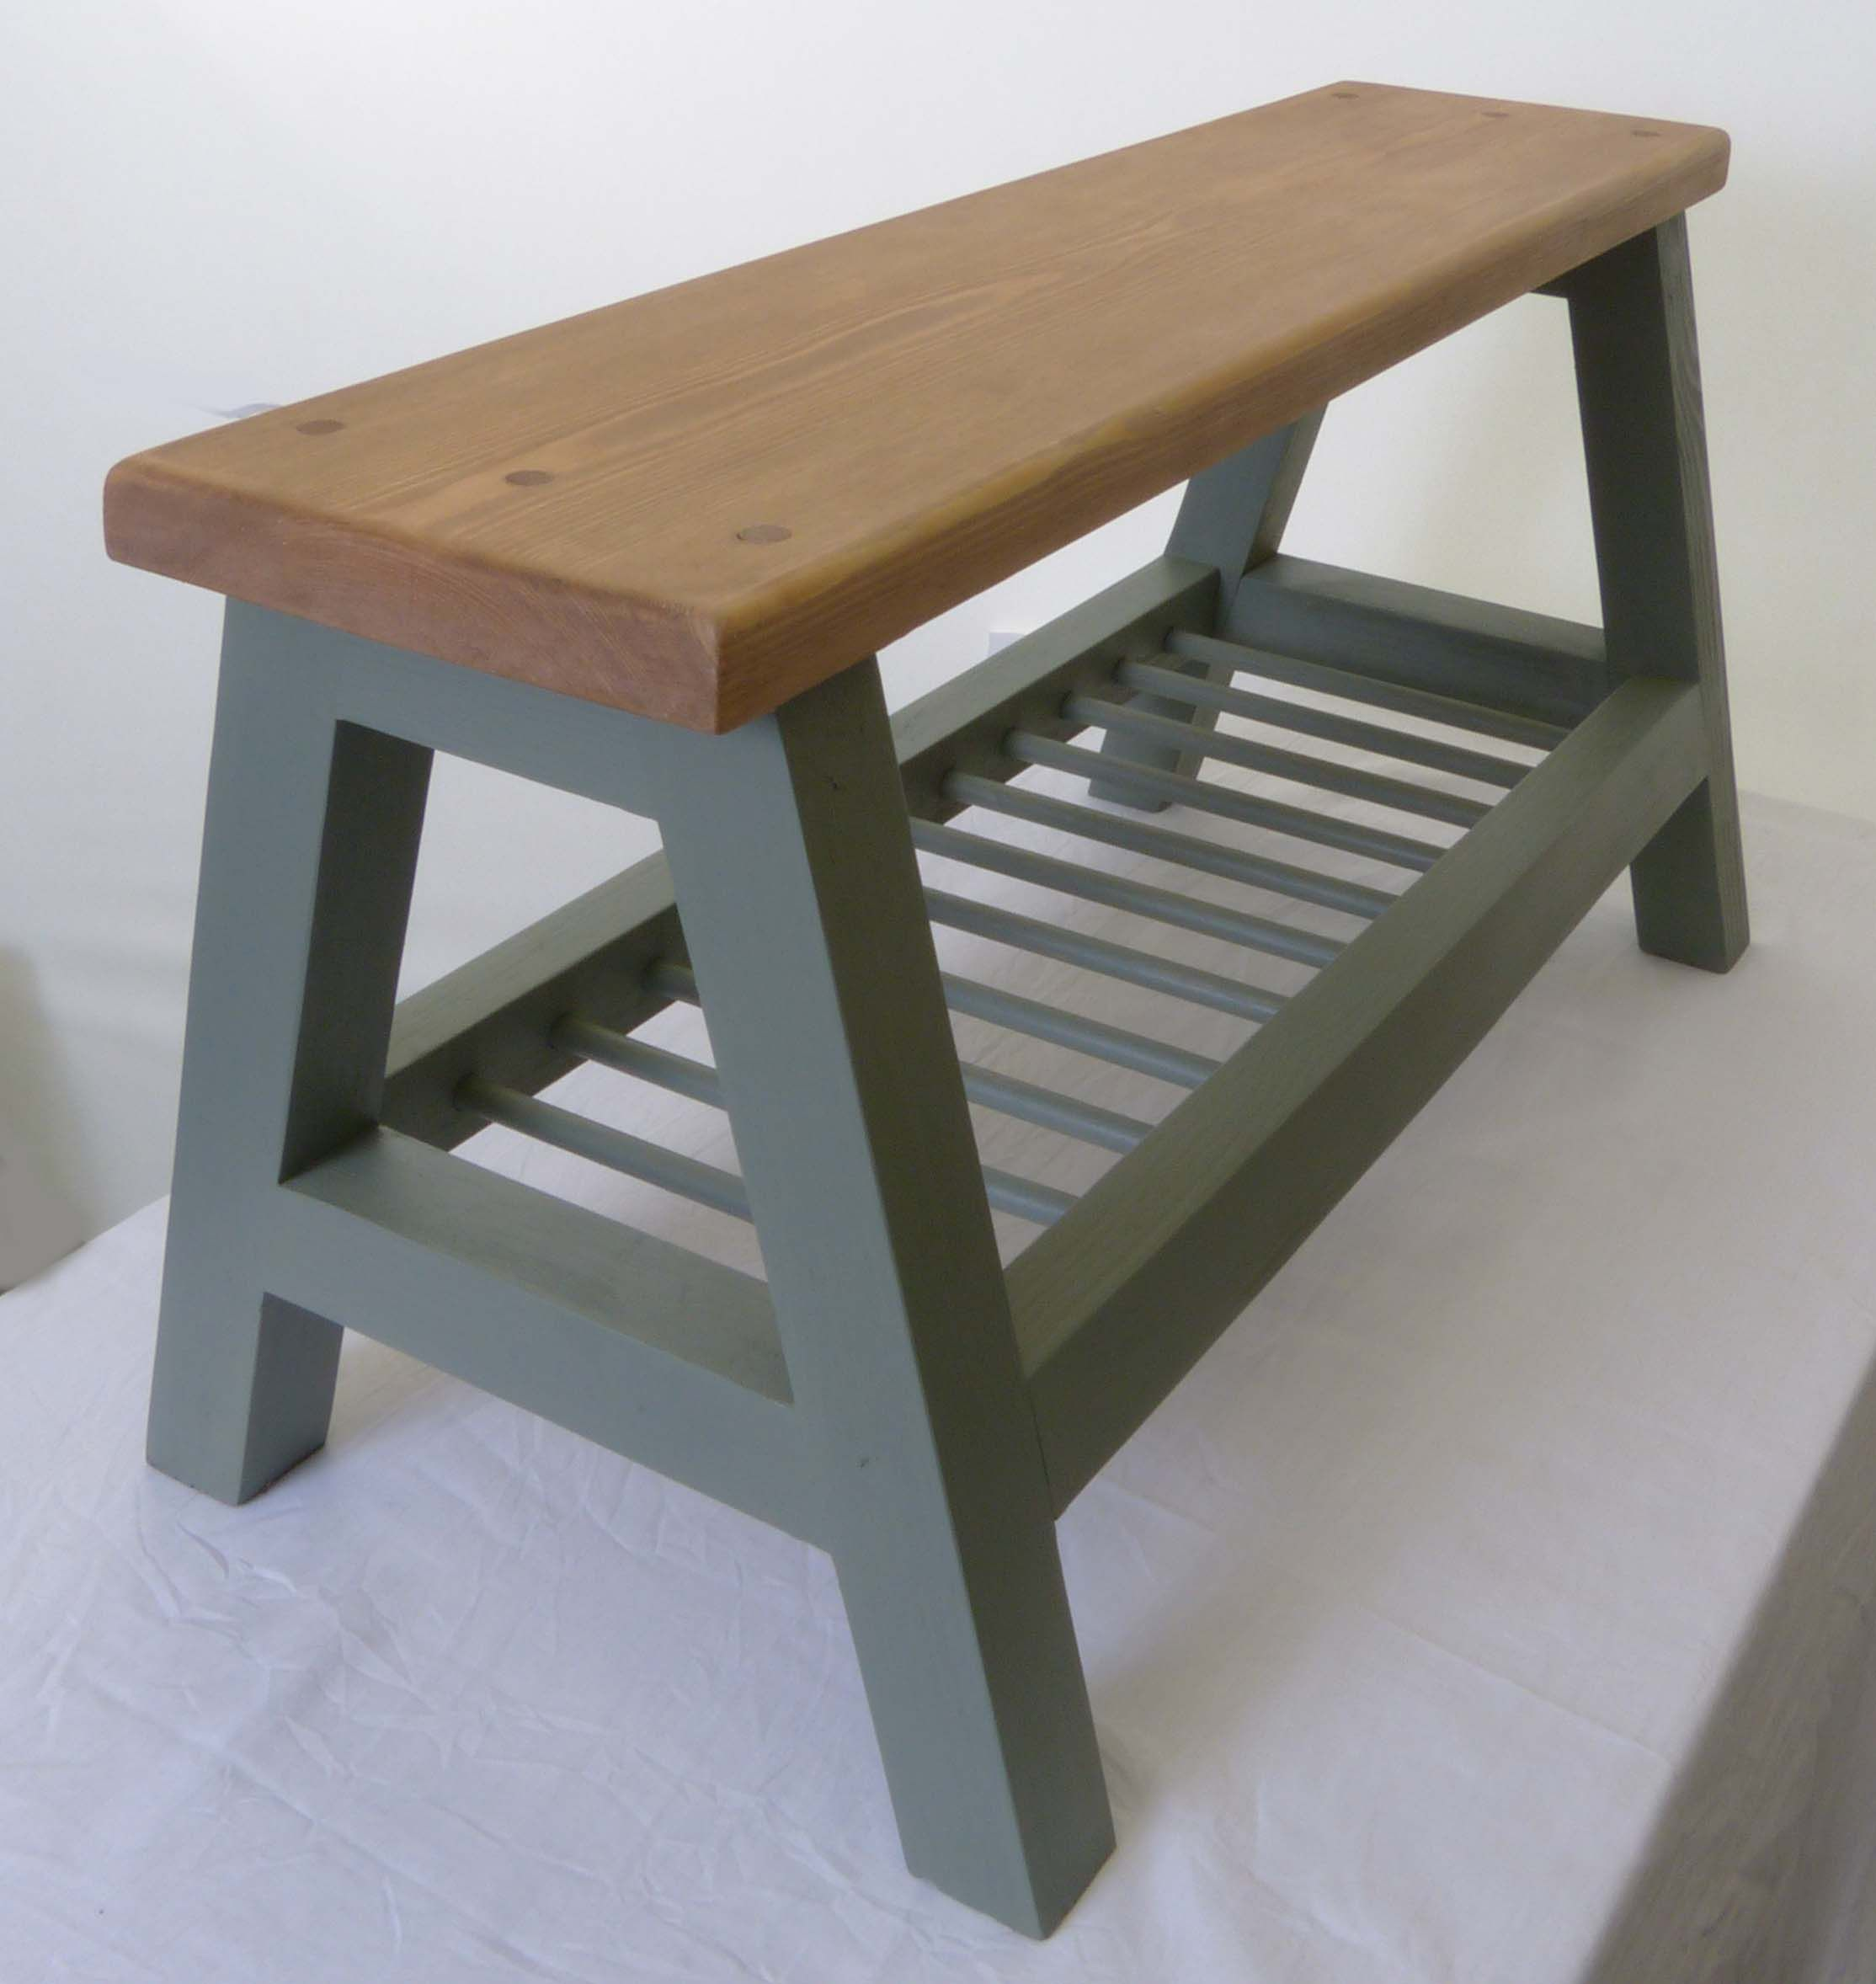 Low Height Small Bench with Shelf / Storage * Handmade